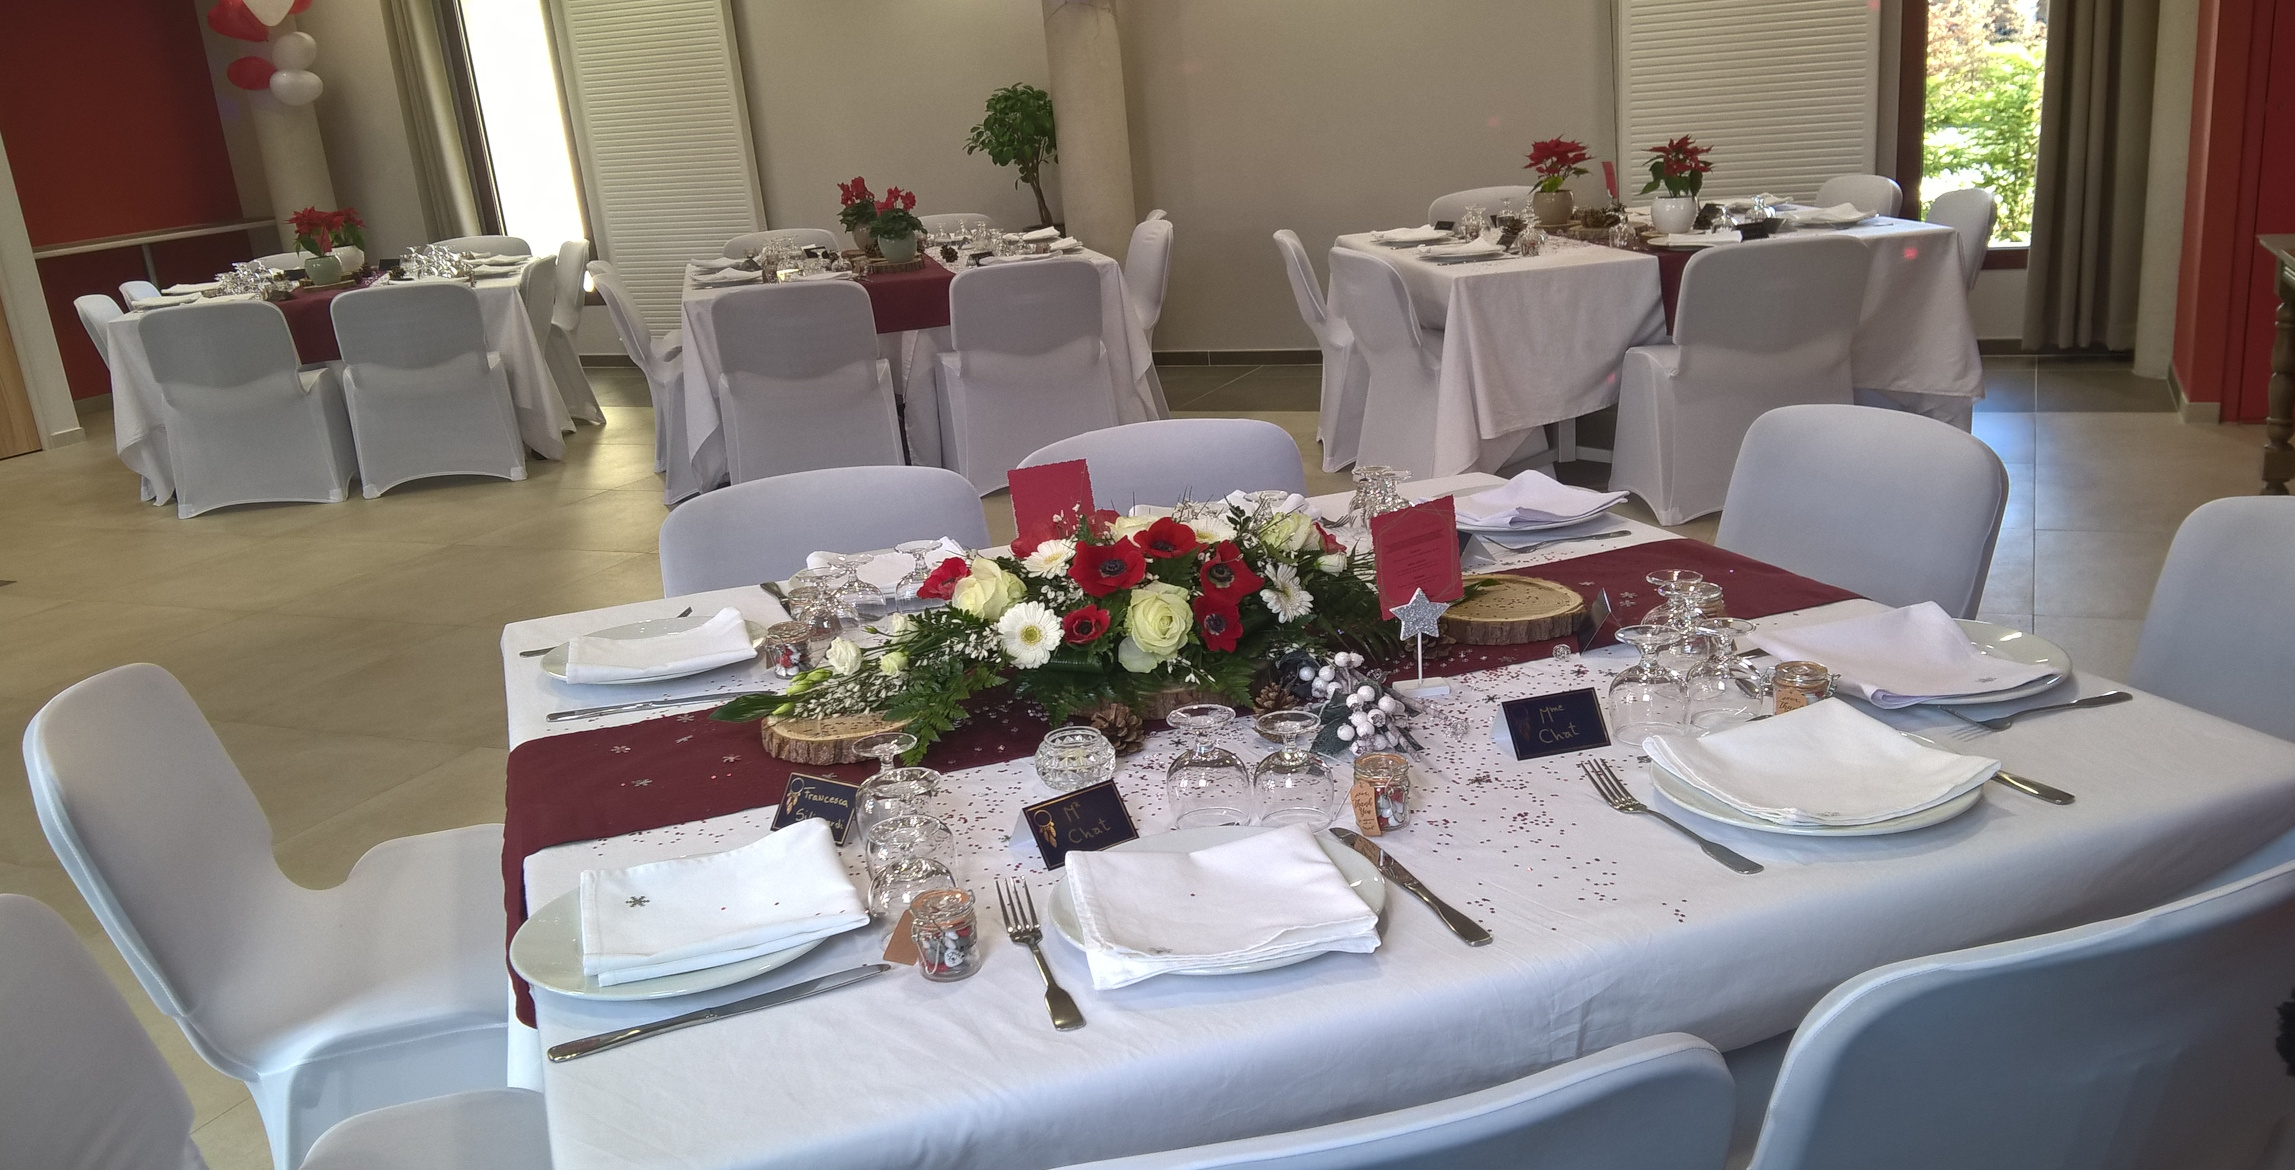 mariage-sall-reception-zen-lacroiseedespossibles-oise